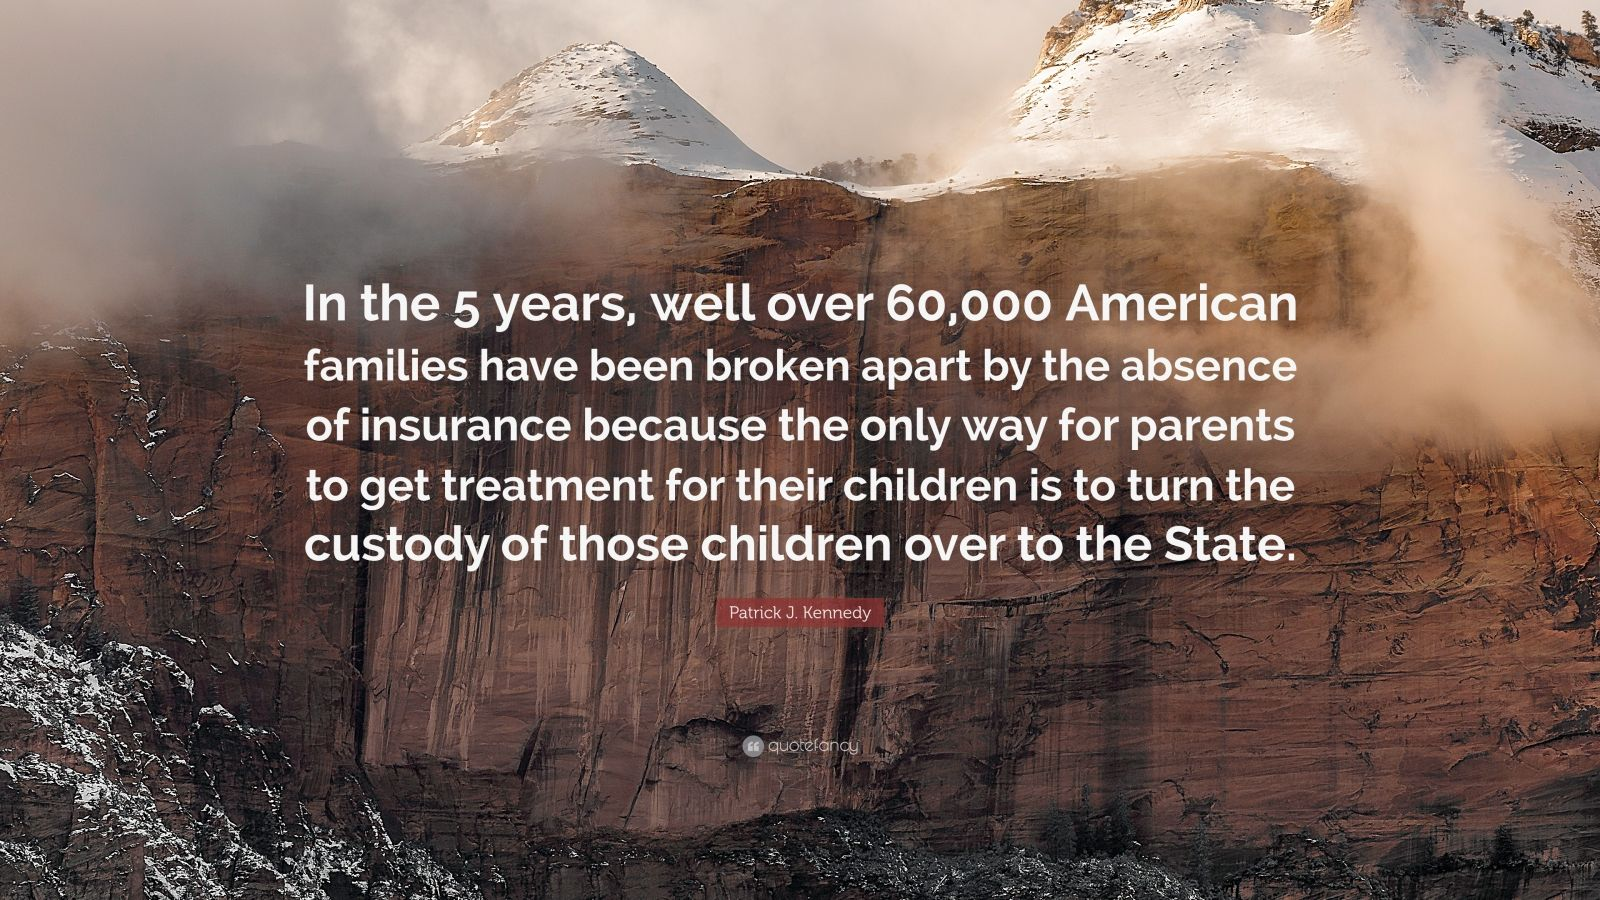 """Patrick J. Kennedy Quote: """"In the 5 years, well over 60,000 American families have been broken apart by the absence of insurance because the only way for parents to get treatment for their children is to turn the custody of those children over to the State."""""""